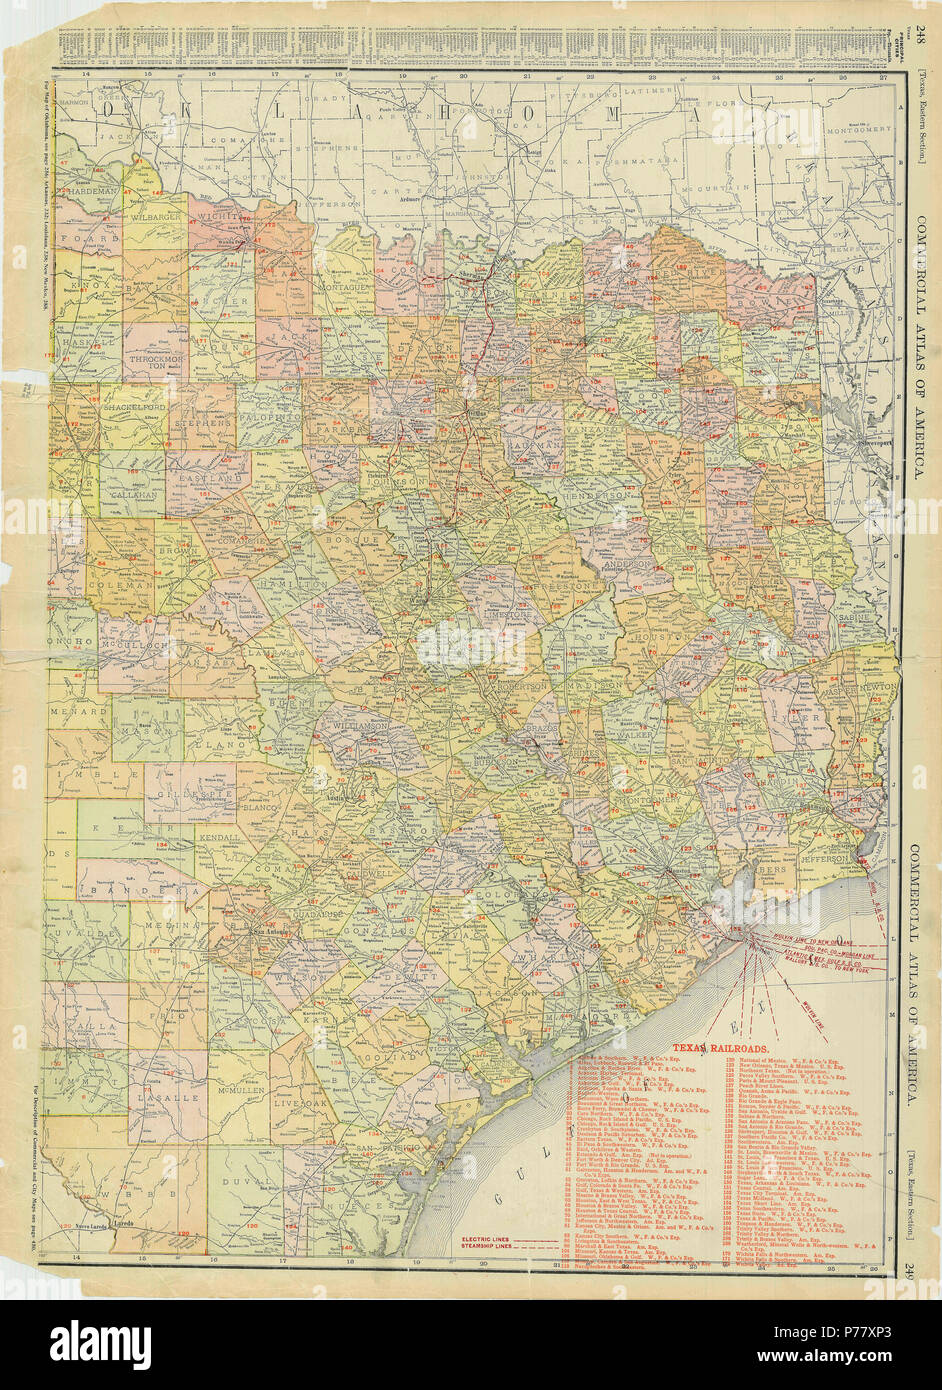 Quanah Texas Map on